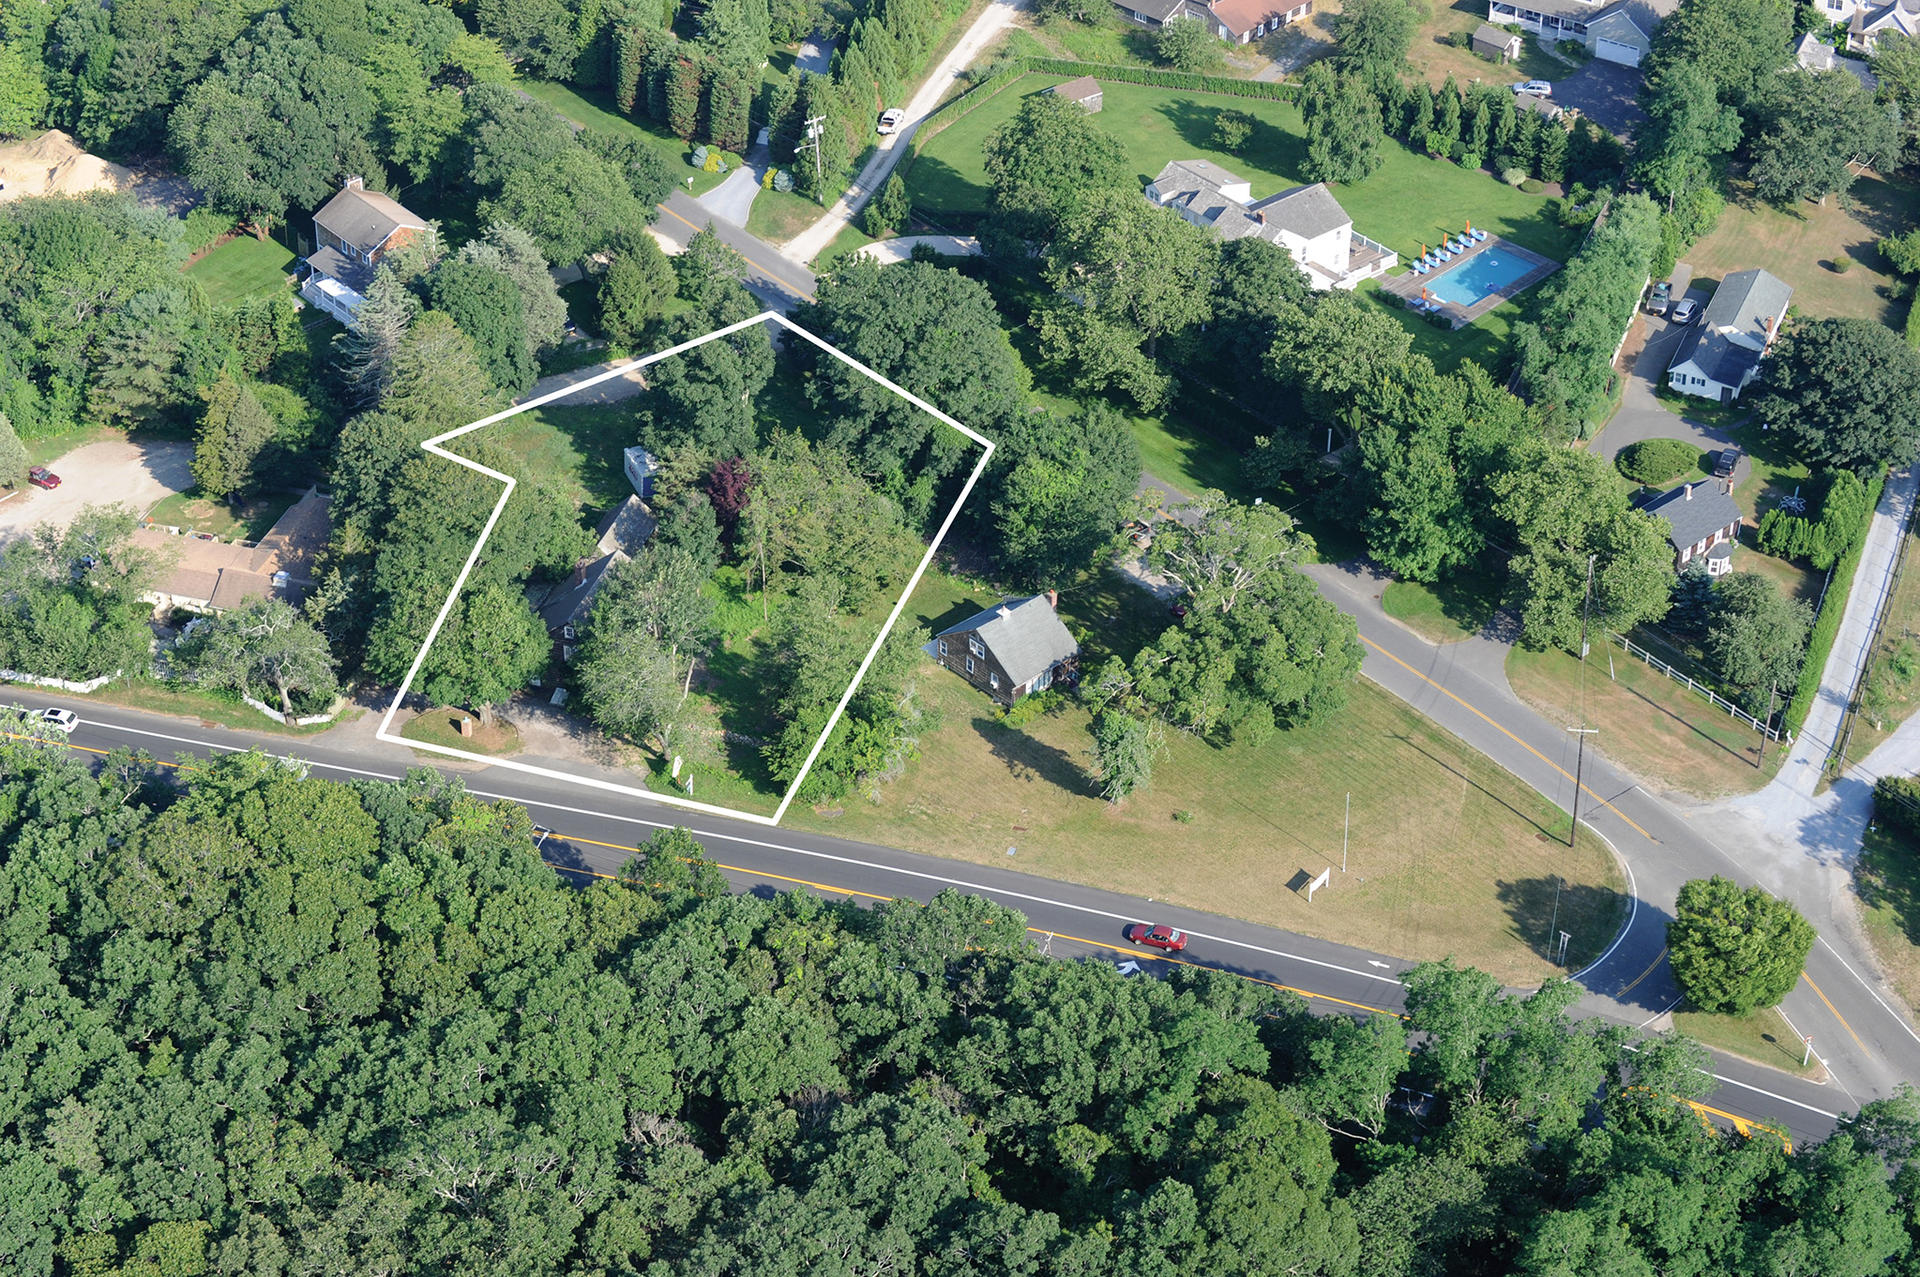 Commercial for Sale at East Hampton- Commercial Property 404 Montauk Highway/49 Skimhampton Road, East Hampton, New York